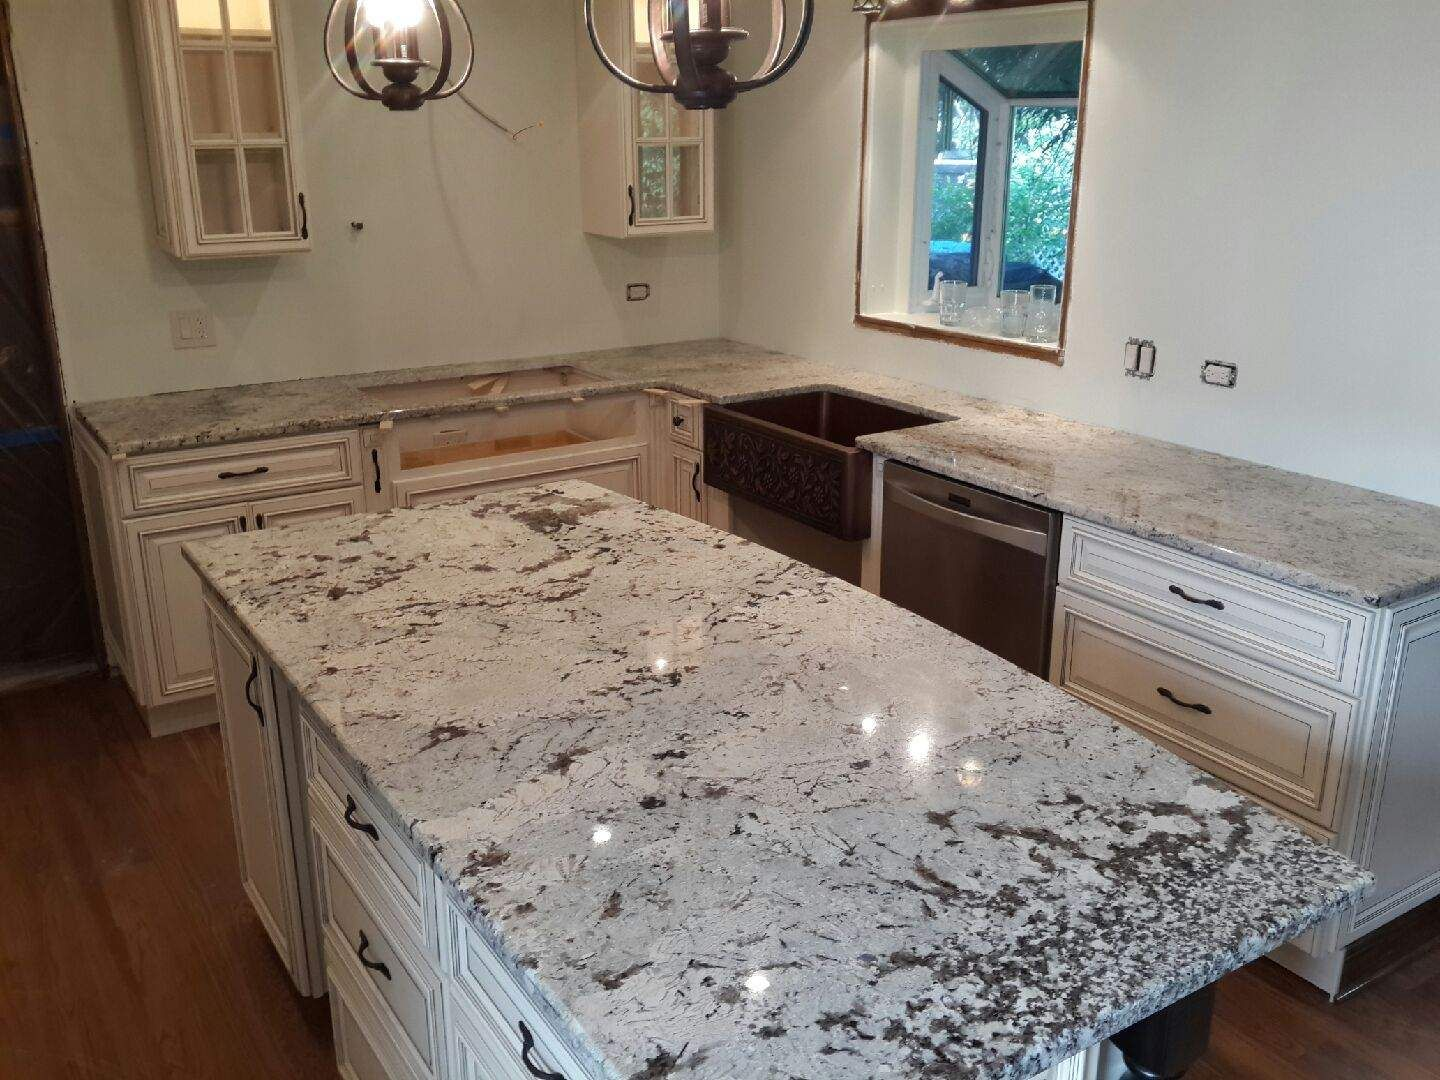 Jupara Delicatus Granite Countertops Skokie IL | Granite and Quartz ...